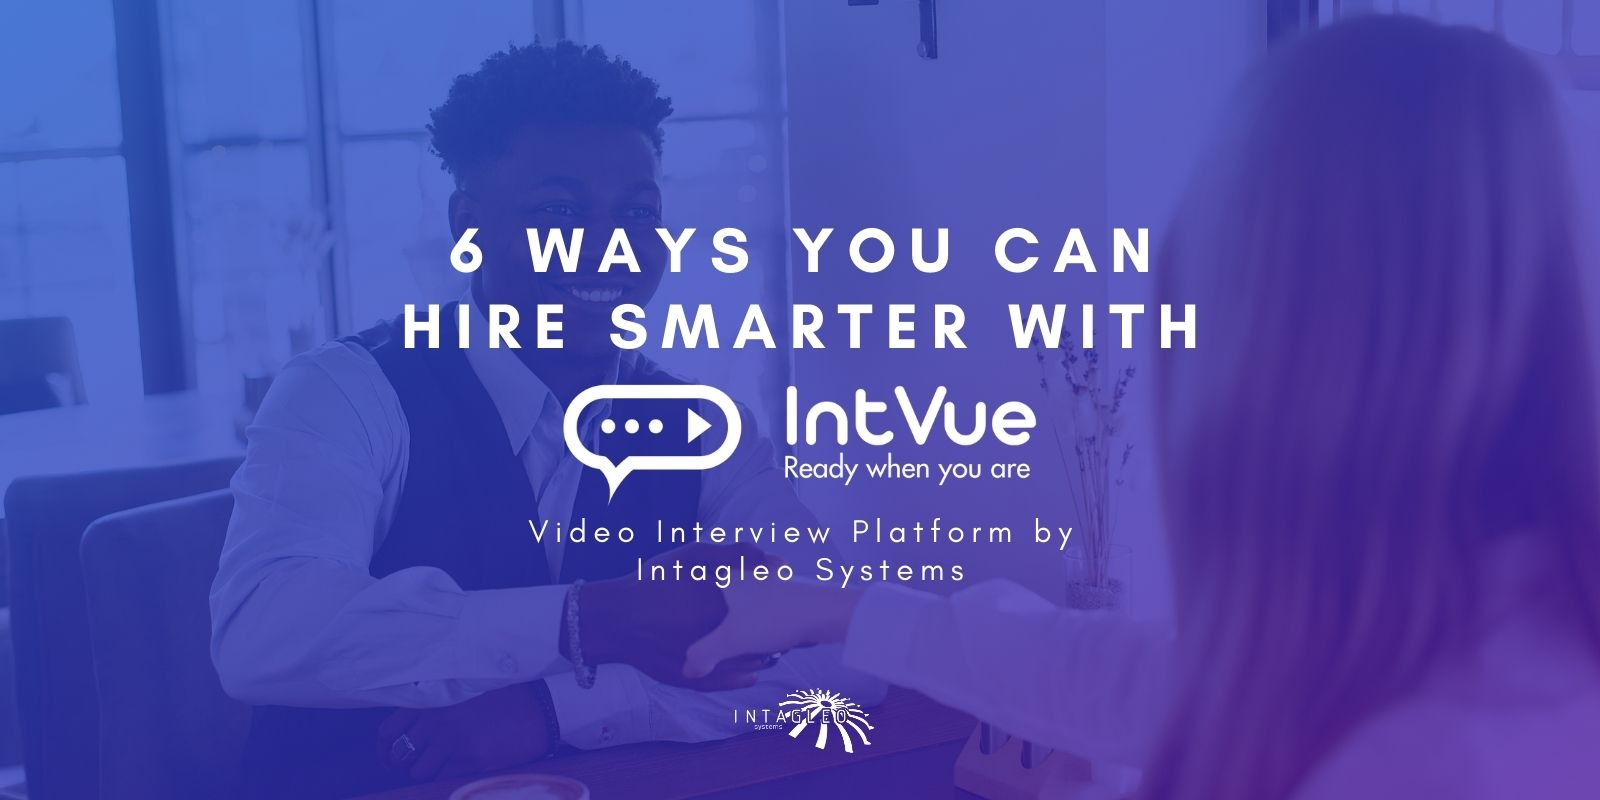 IntVue Video Interview Platform